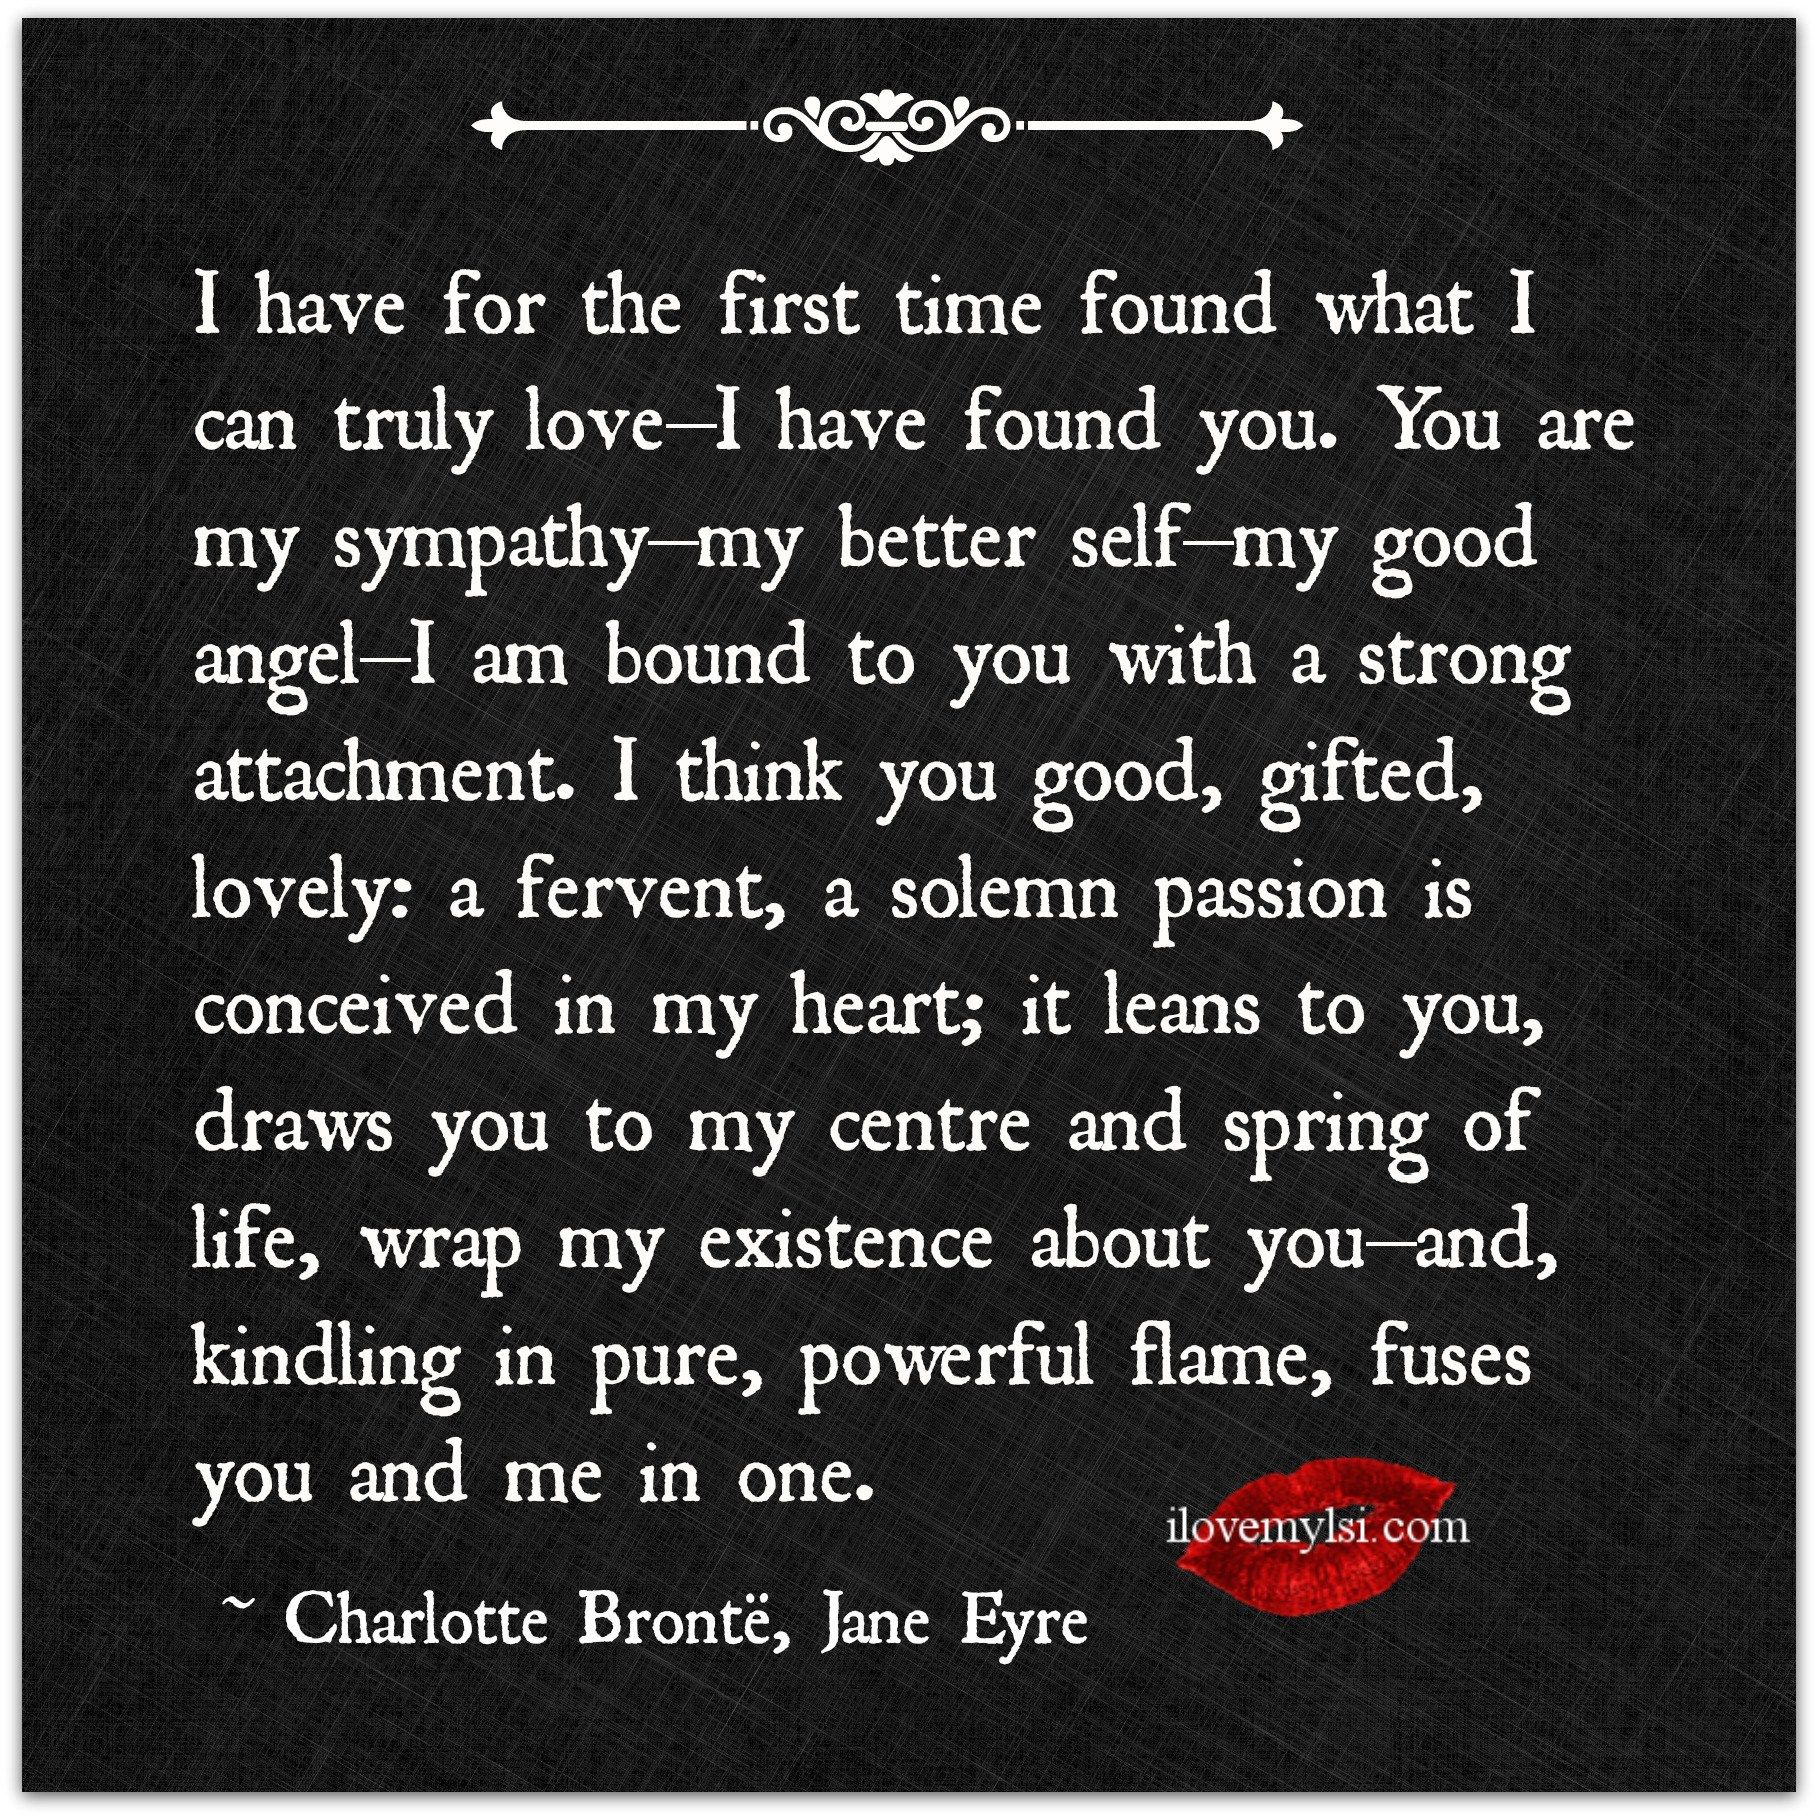 The 10 Most Romantic Love Quotes You Will Ever Read. - Page 10 of